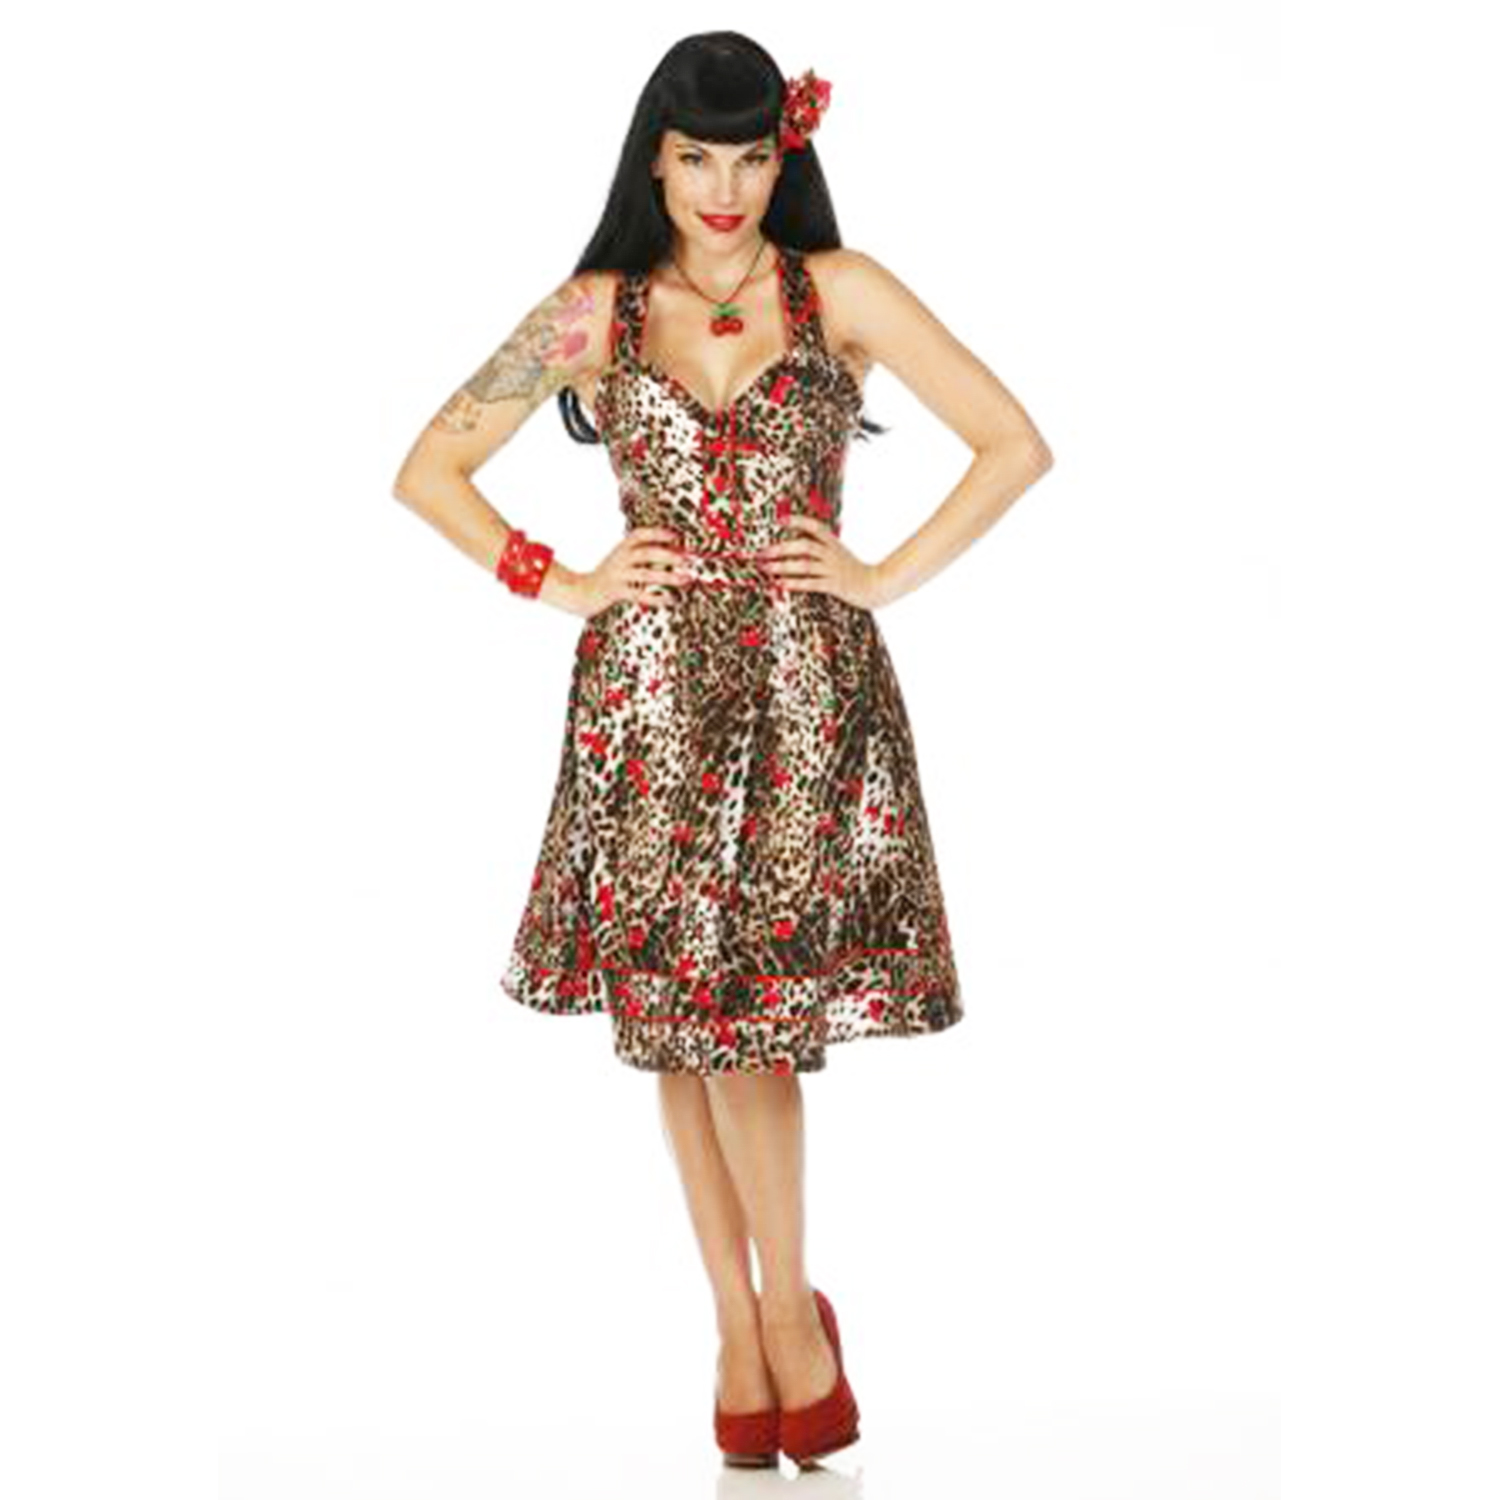 Leopard cherry 50s vintage style retro rockabilly prom party dress